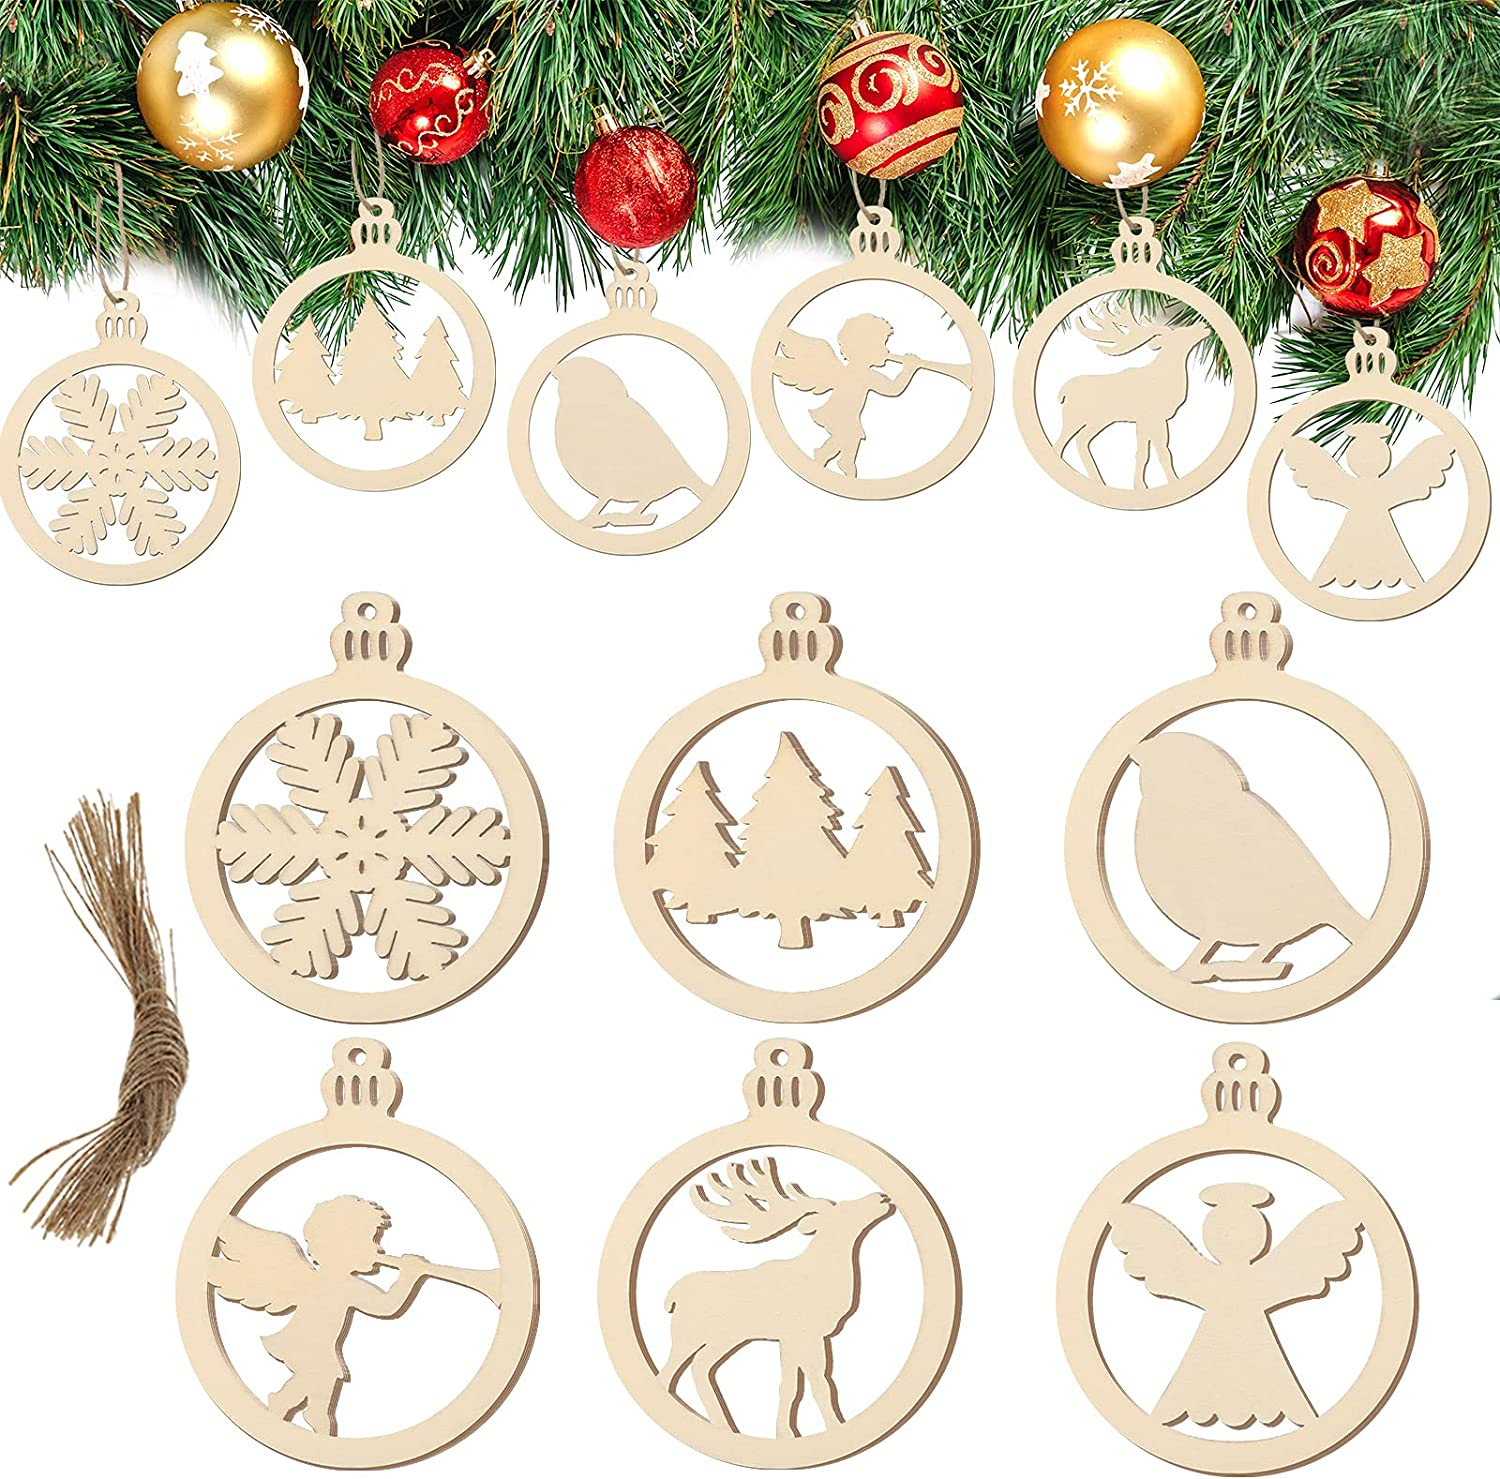 30 online shop Pieces Christmas Hanging Round Fretwo Ornaments Hollow Cheap sale Wooden